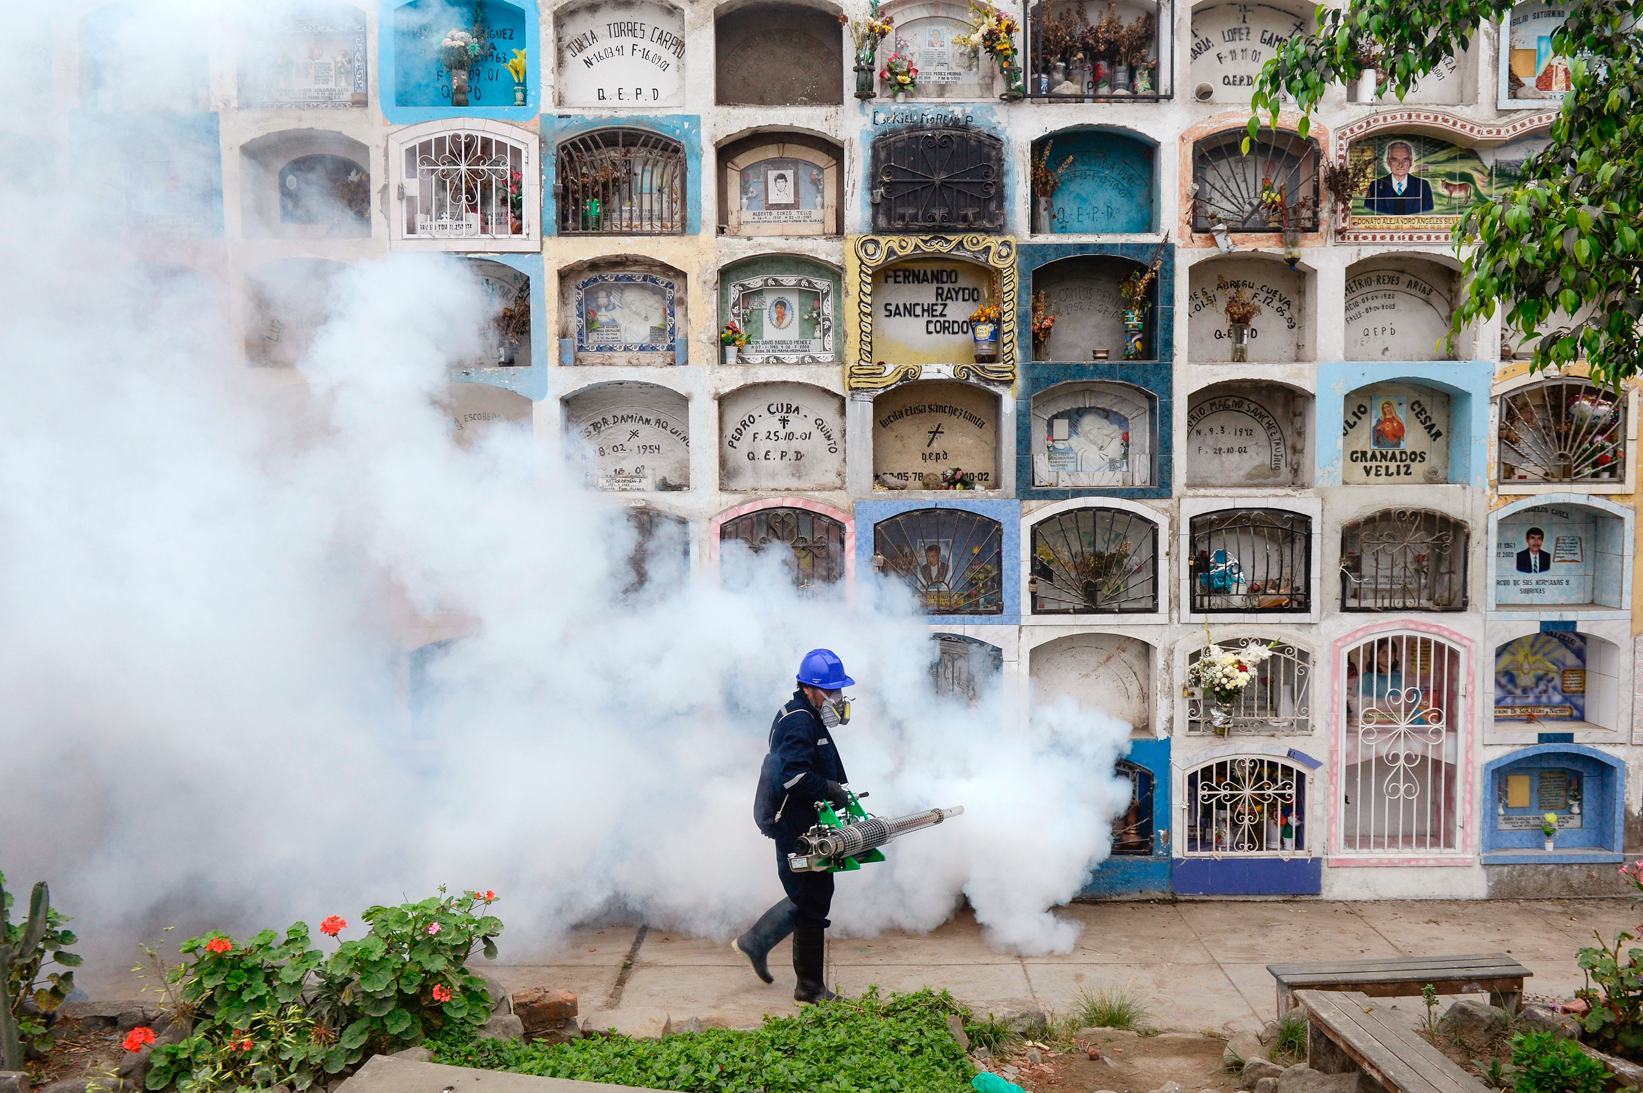 In an effort to stop the spread of Zika, a specialist fumigates a graveyard in Lima on Jan. 15